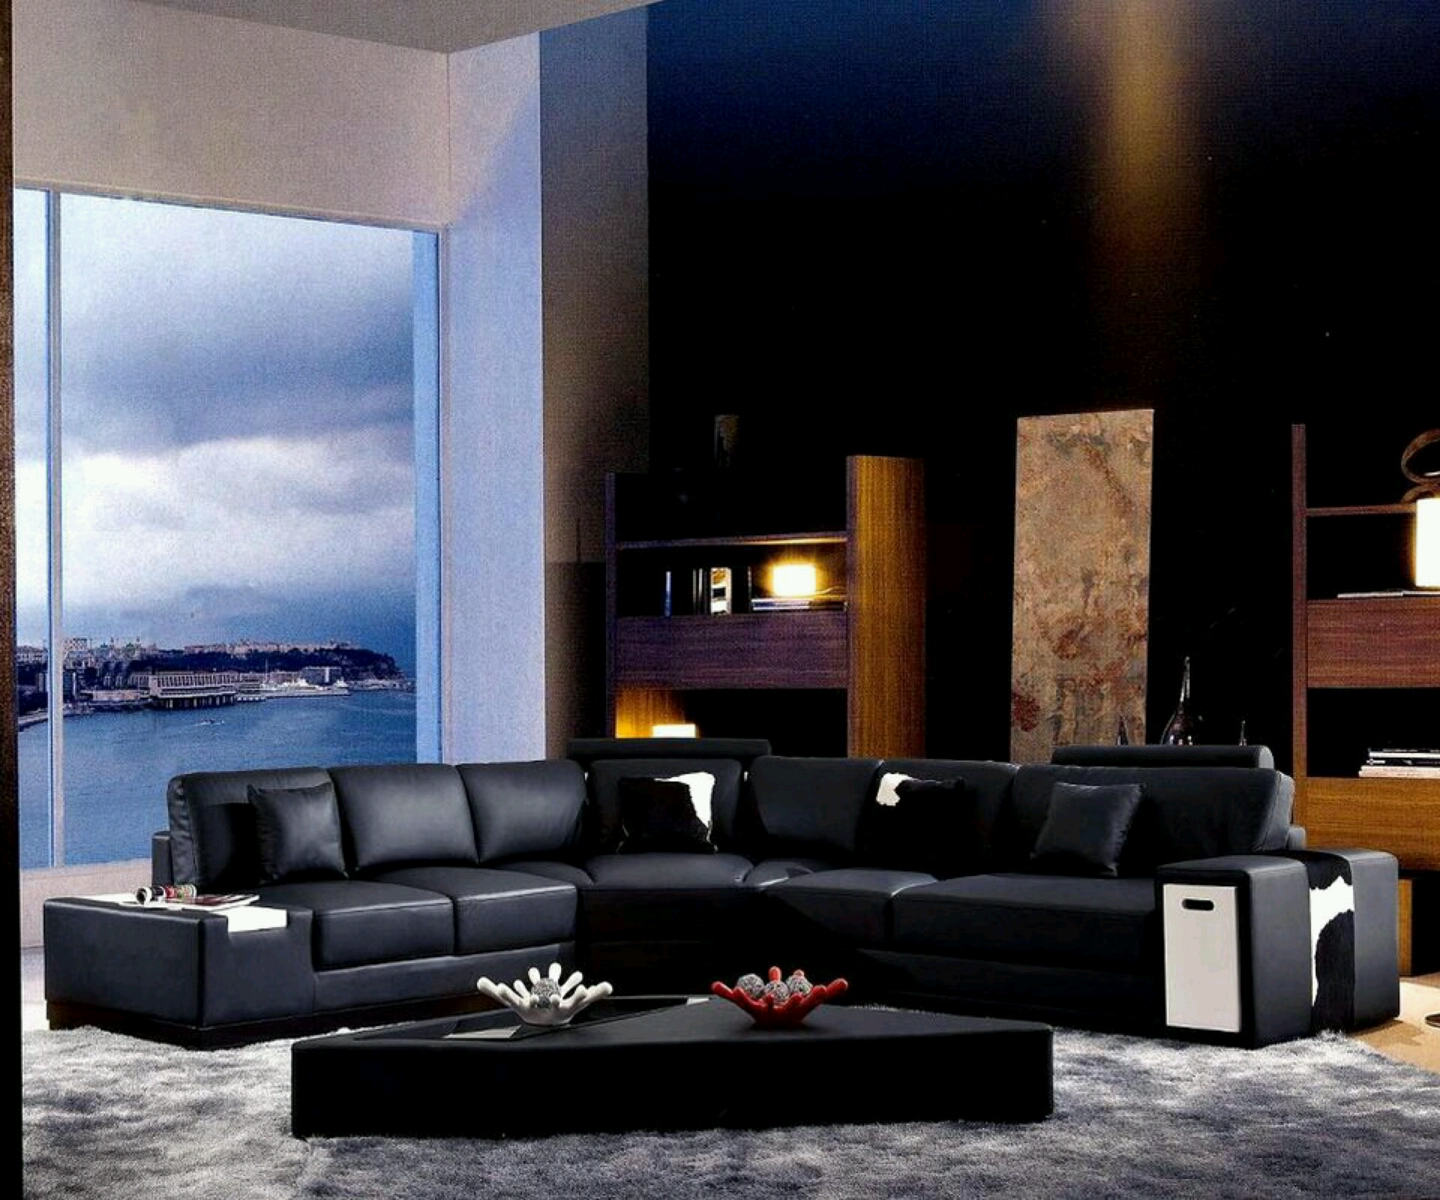 New home designs latest luxury living rooms interior for Living room modern ideas